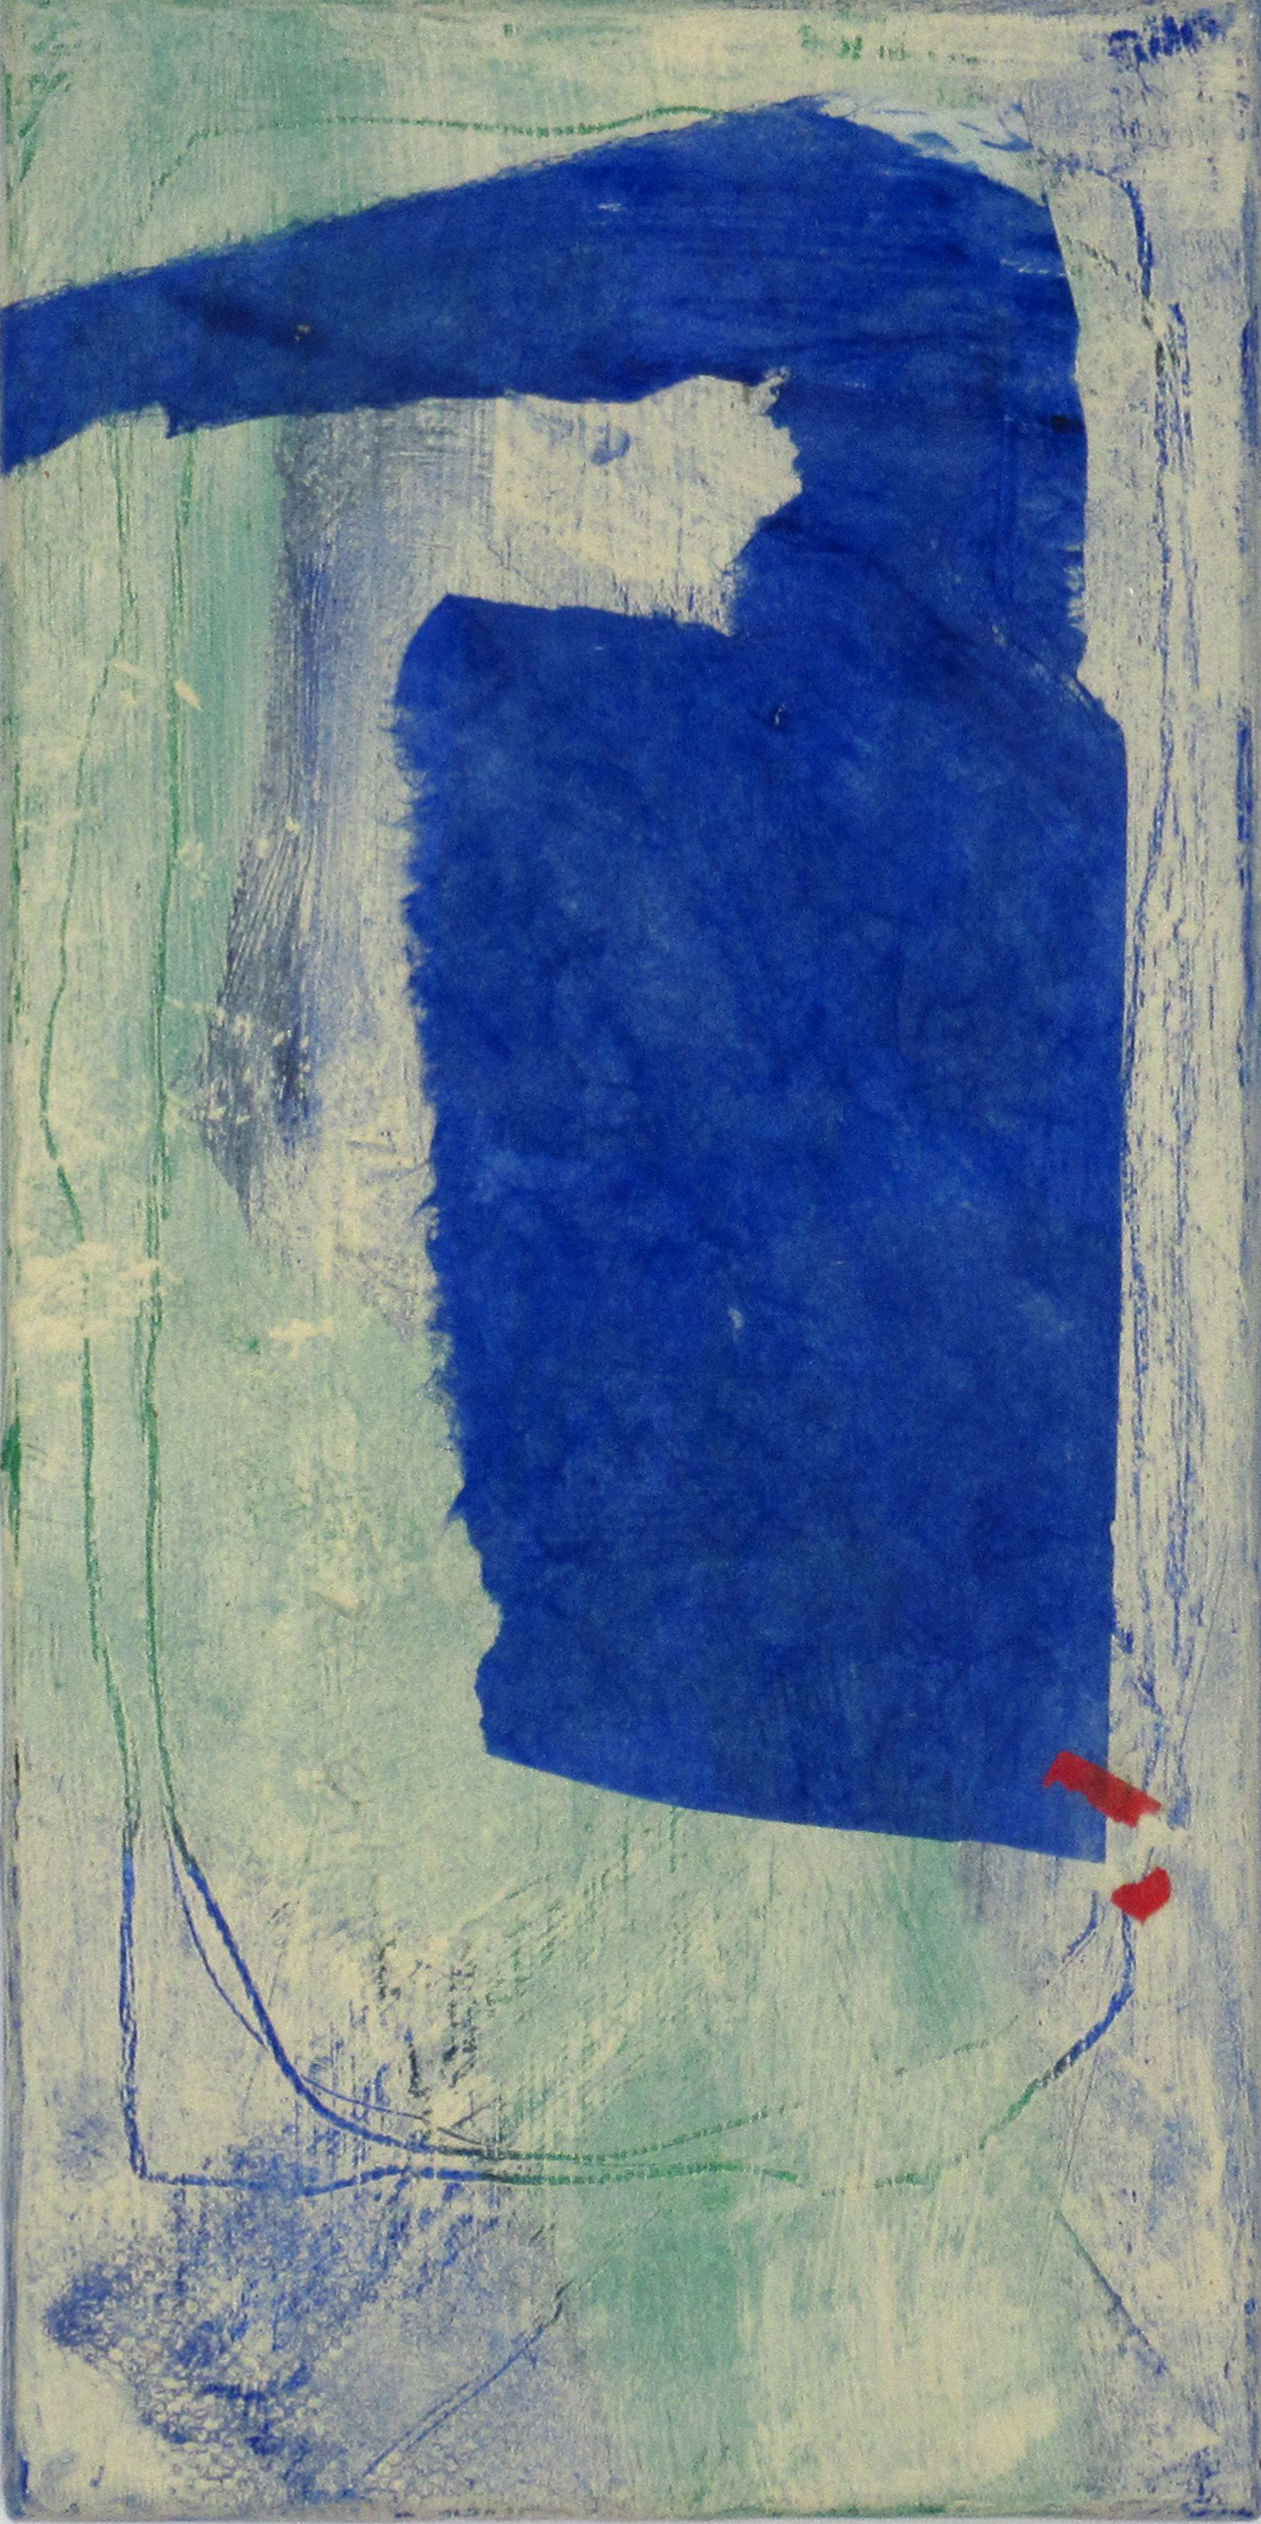 Blue Form on Varied Ground II, 2018, mulberry paper, acrylic on canvas, 12 x 6 in, $500